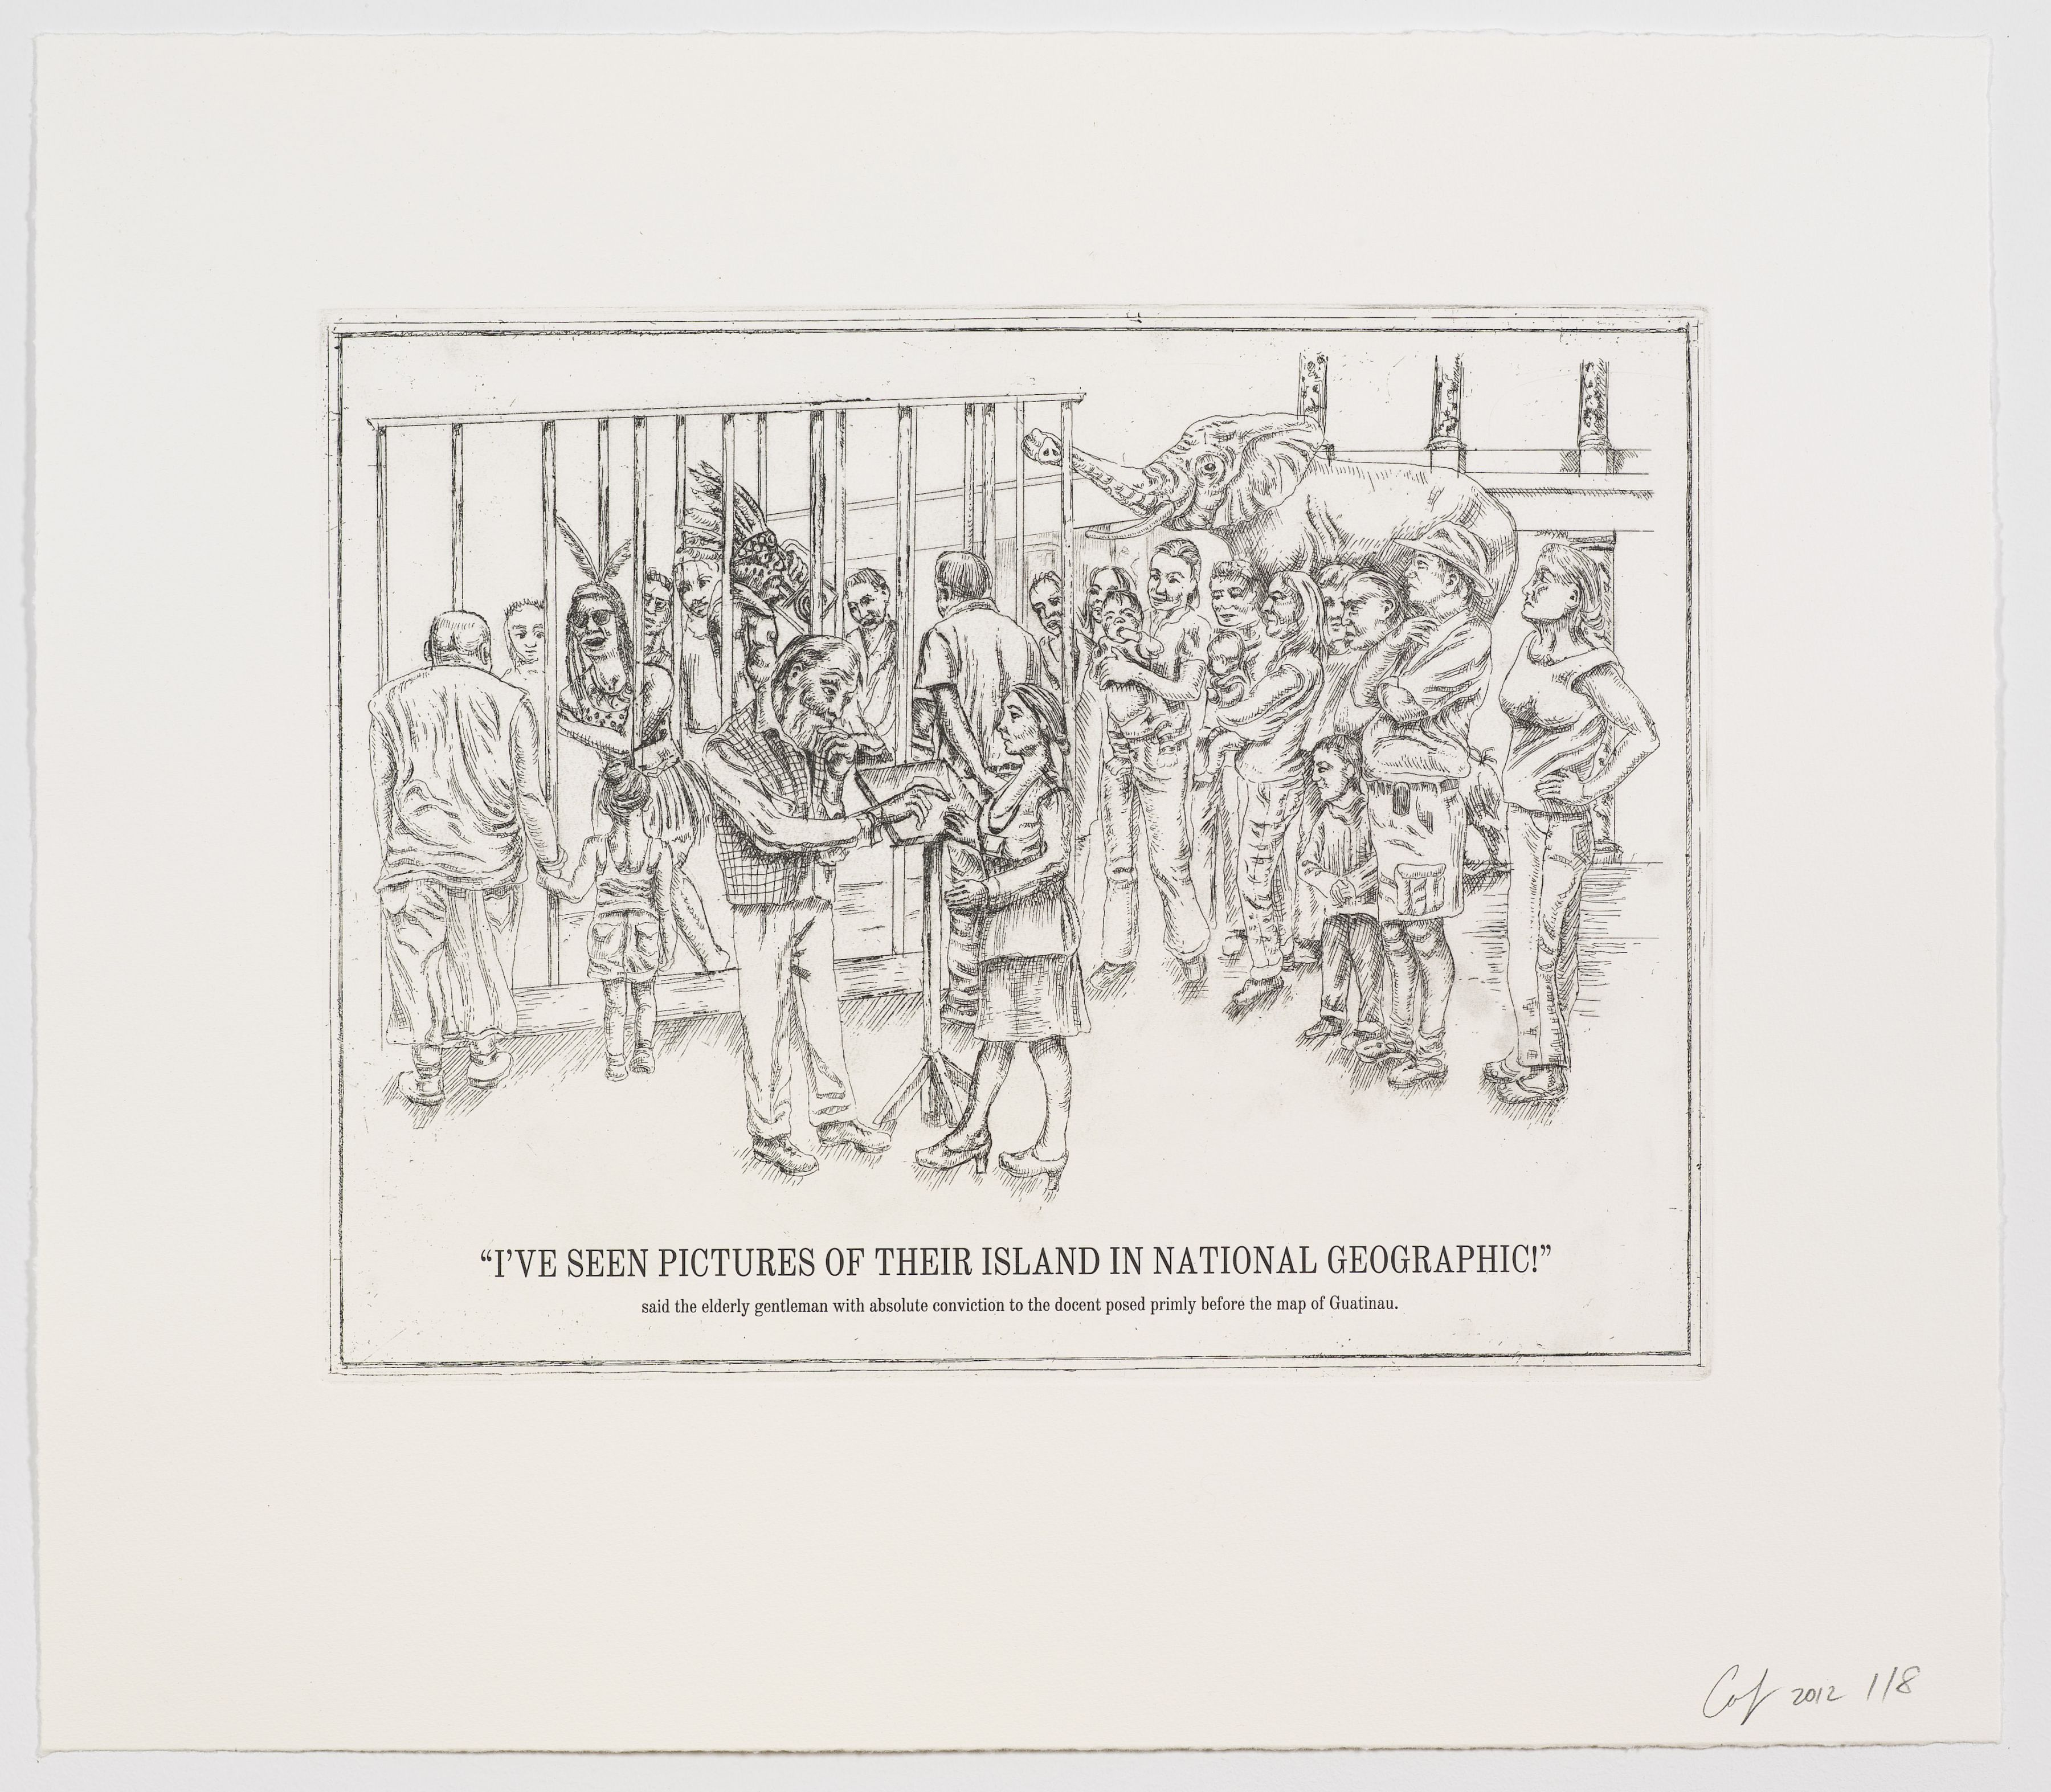 The Undiscovered Amerindians:I've Seen Pictures of Their Island in National Geographic!,2012, Intaglio, engraving, and drypoint etching on paper,21h x 18.3w in (53.3h x 46.5w cm)